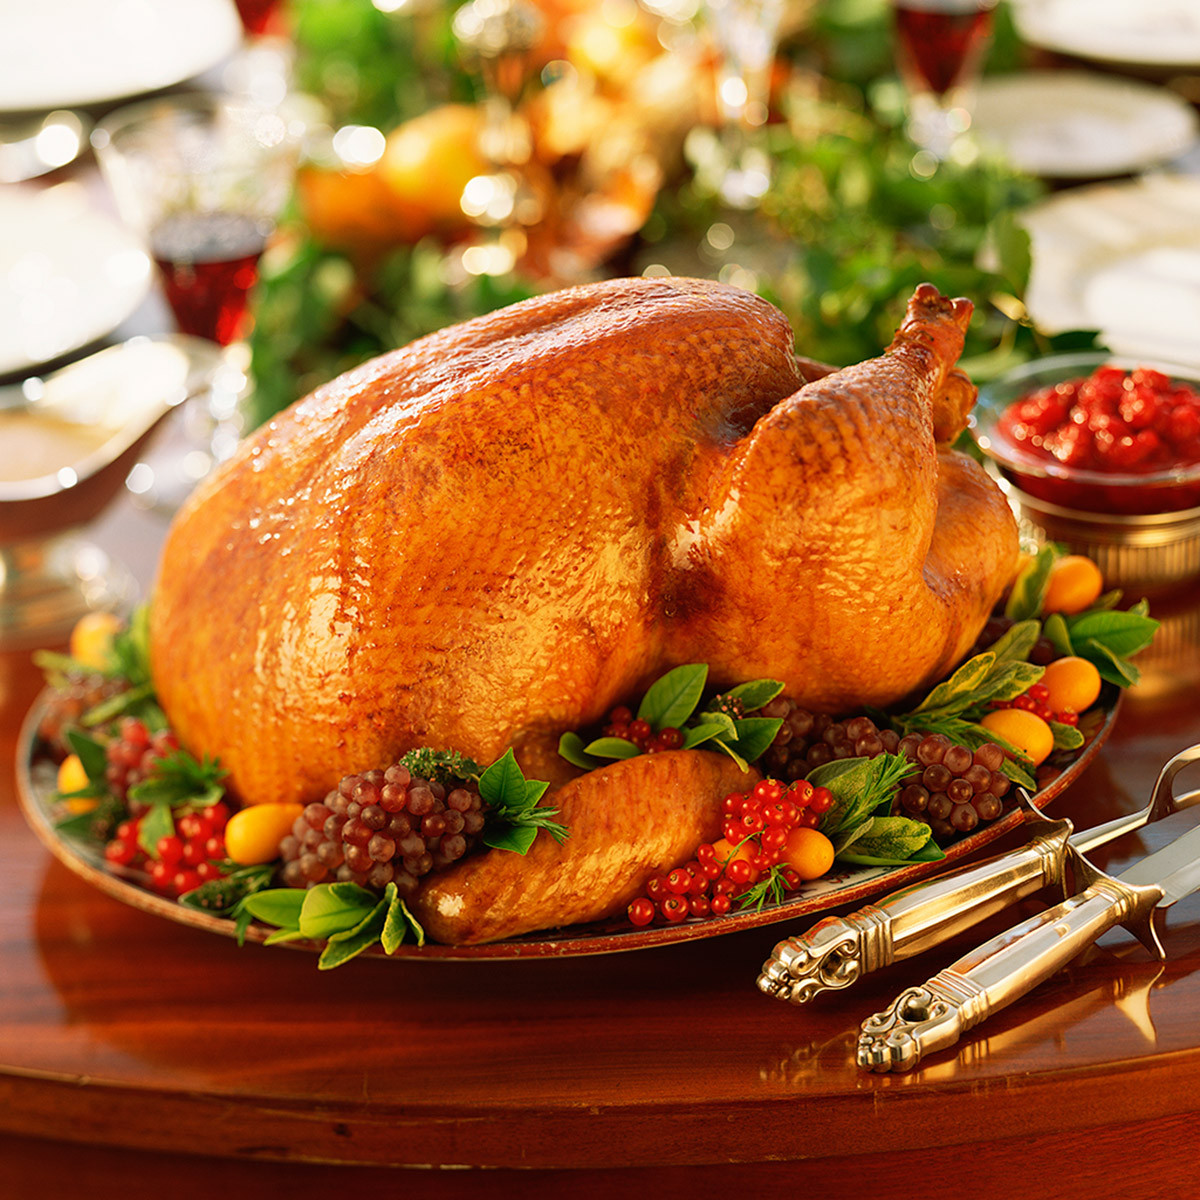 Best Turkey Brand To Buy For Thanksgiving  Christmas taste tests which is the best tasting turkey